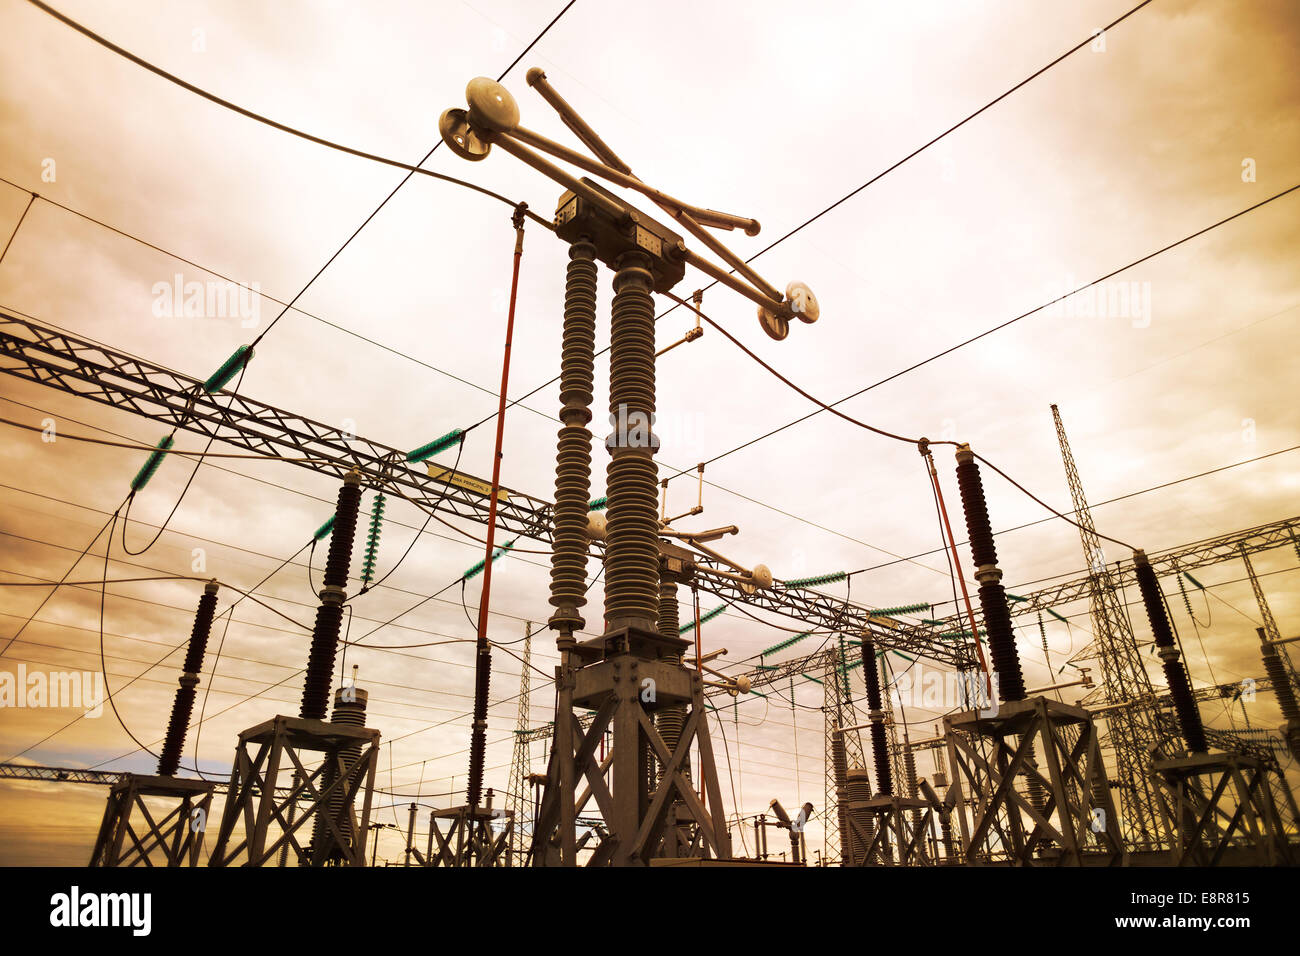 Electric substation in Chile - Stock Image